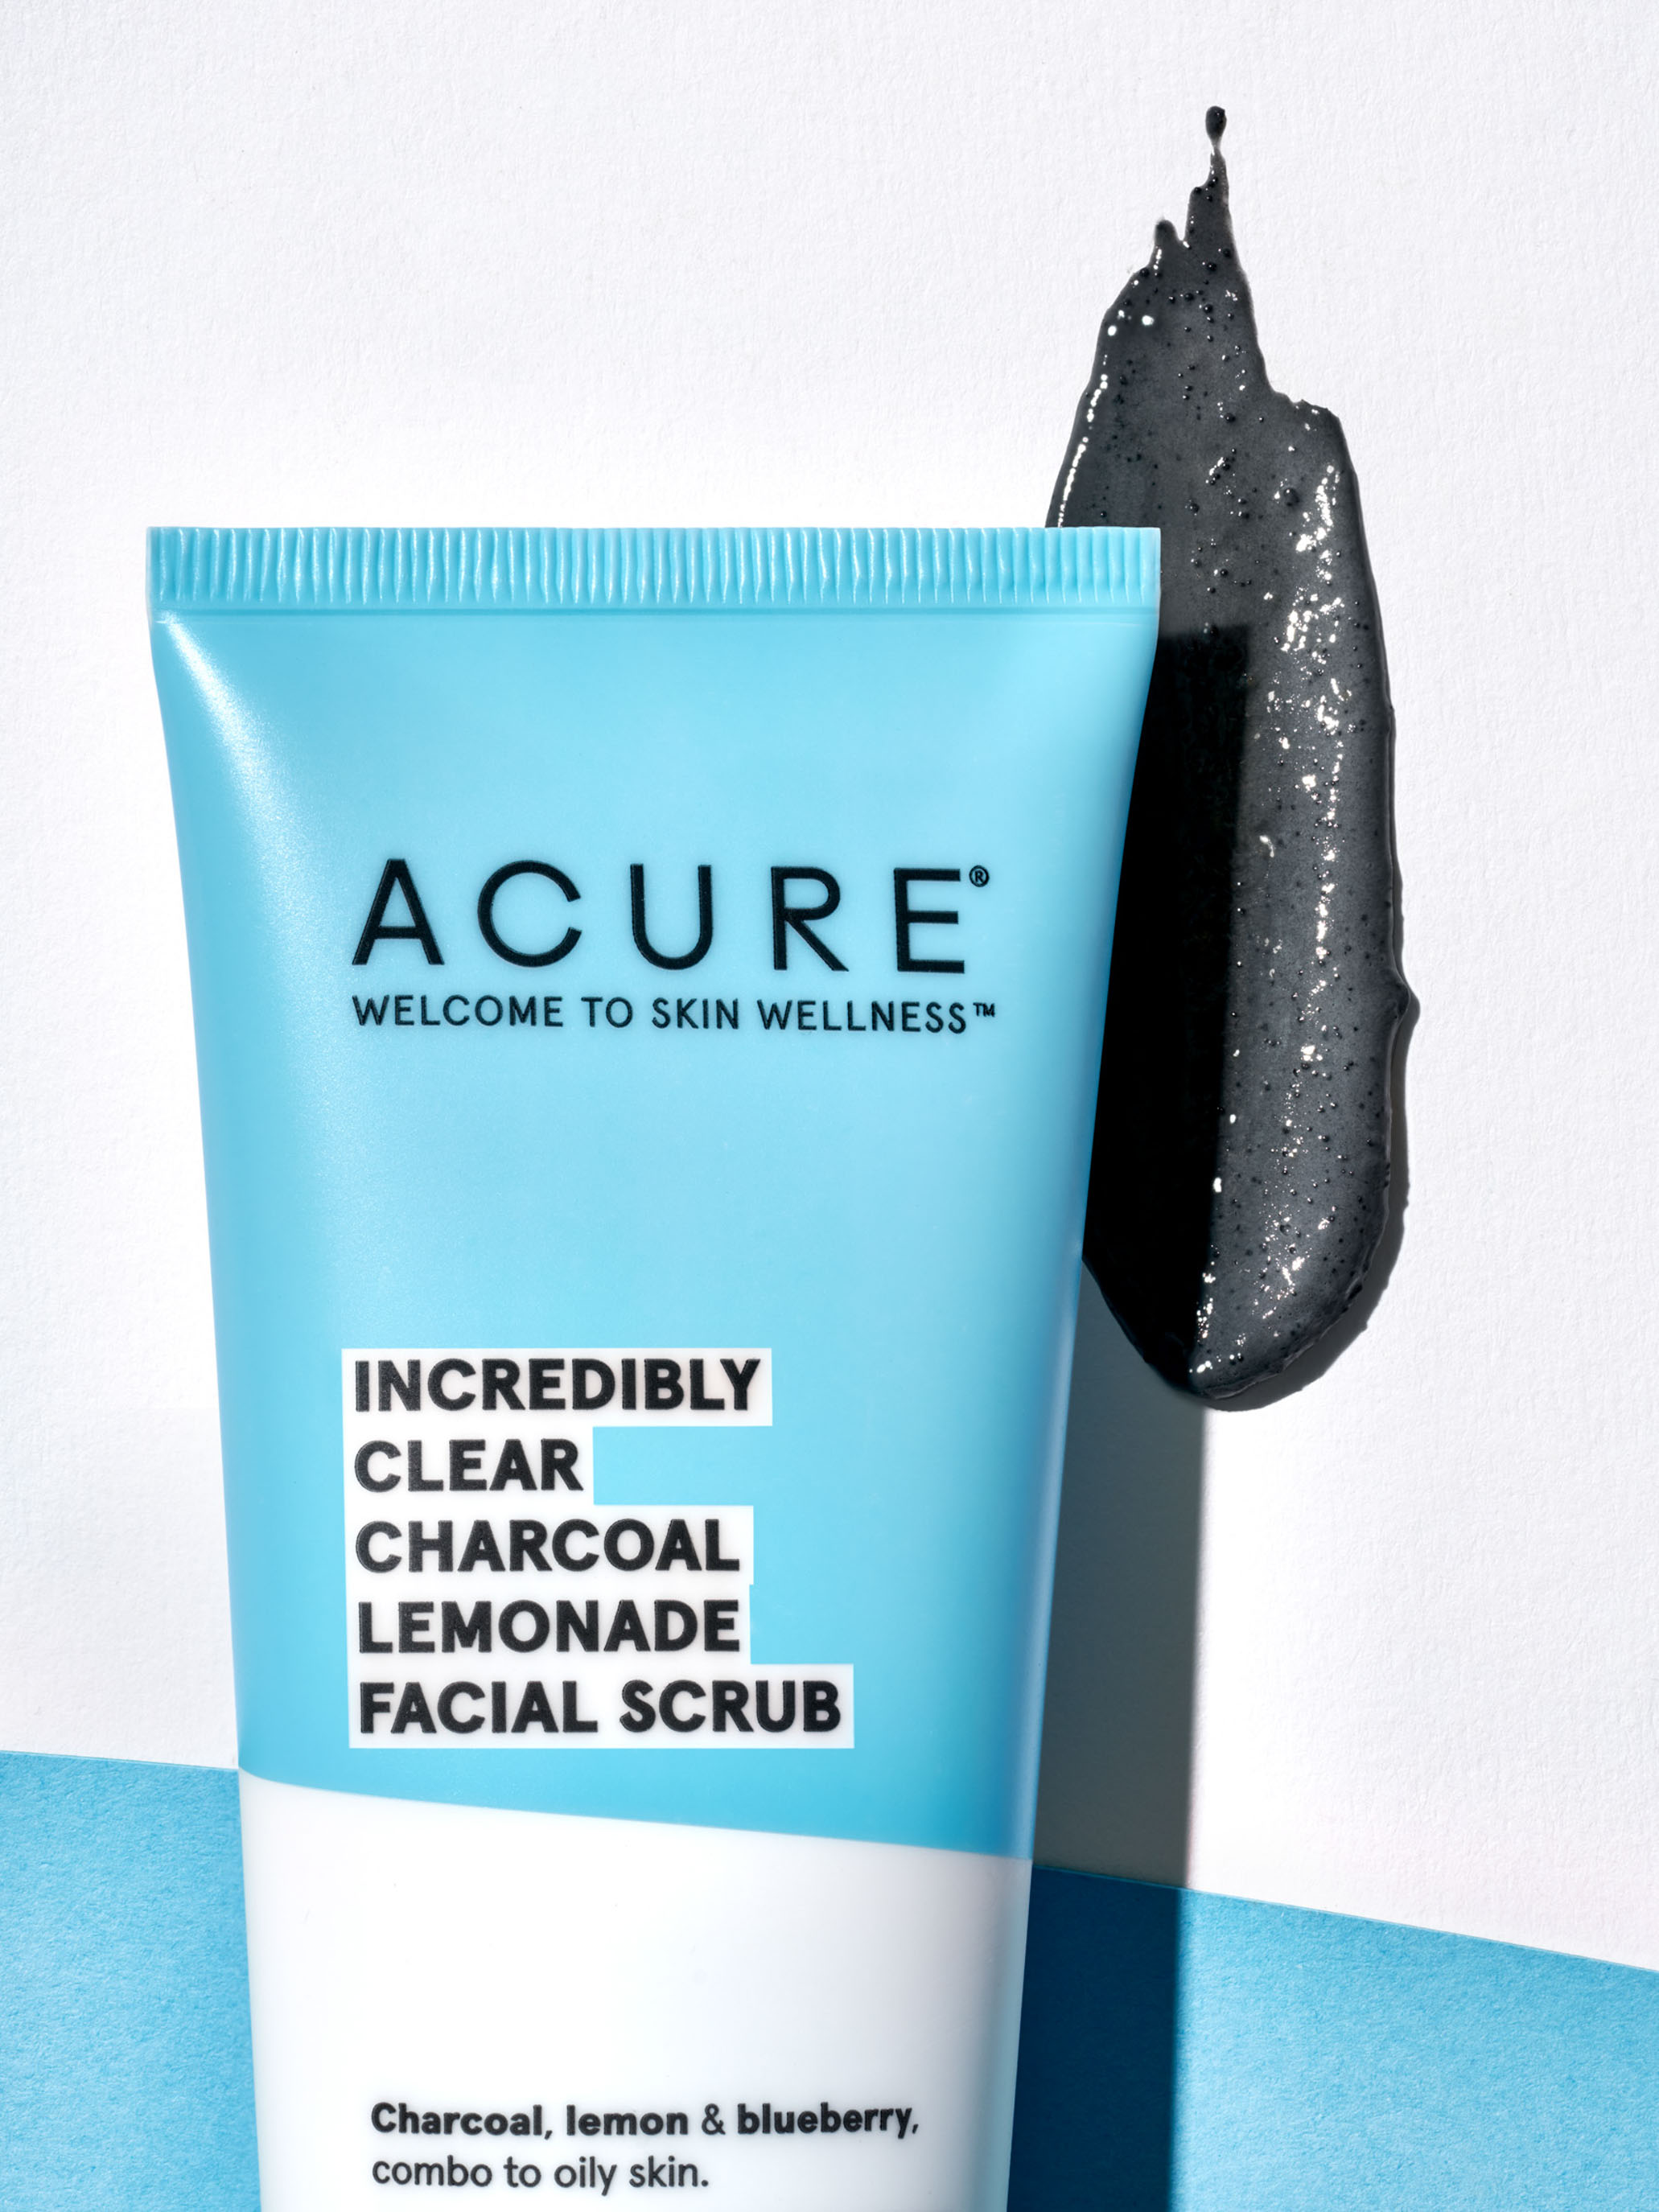 STAN Acure Product Still Life Charcoal Facial Scrub